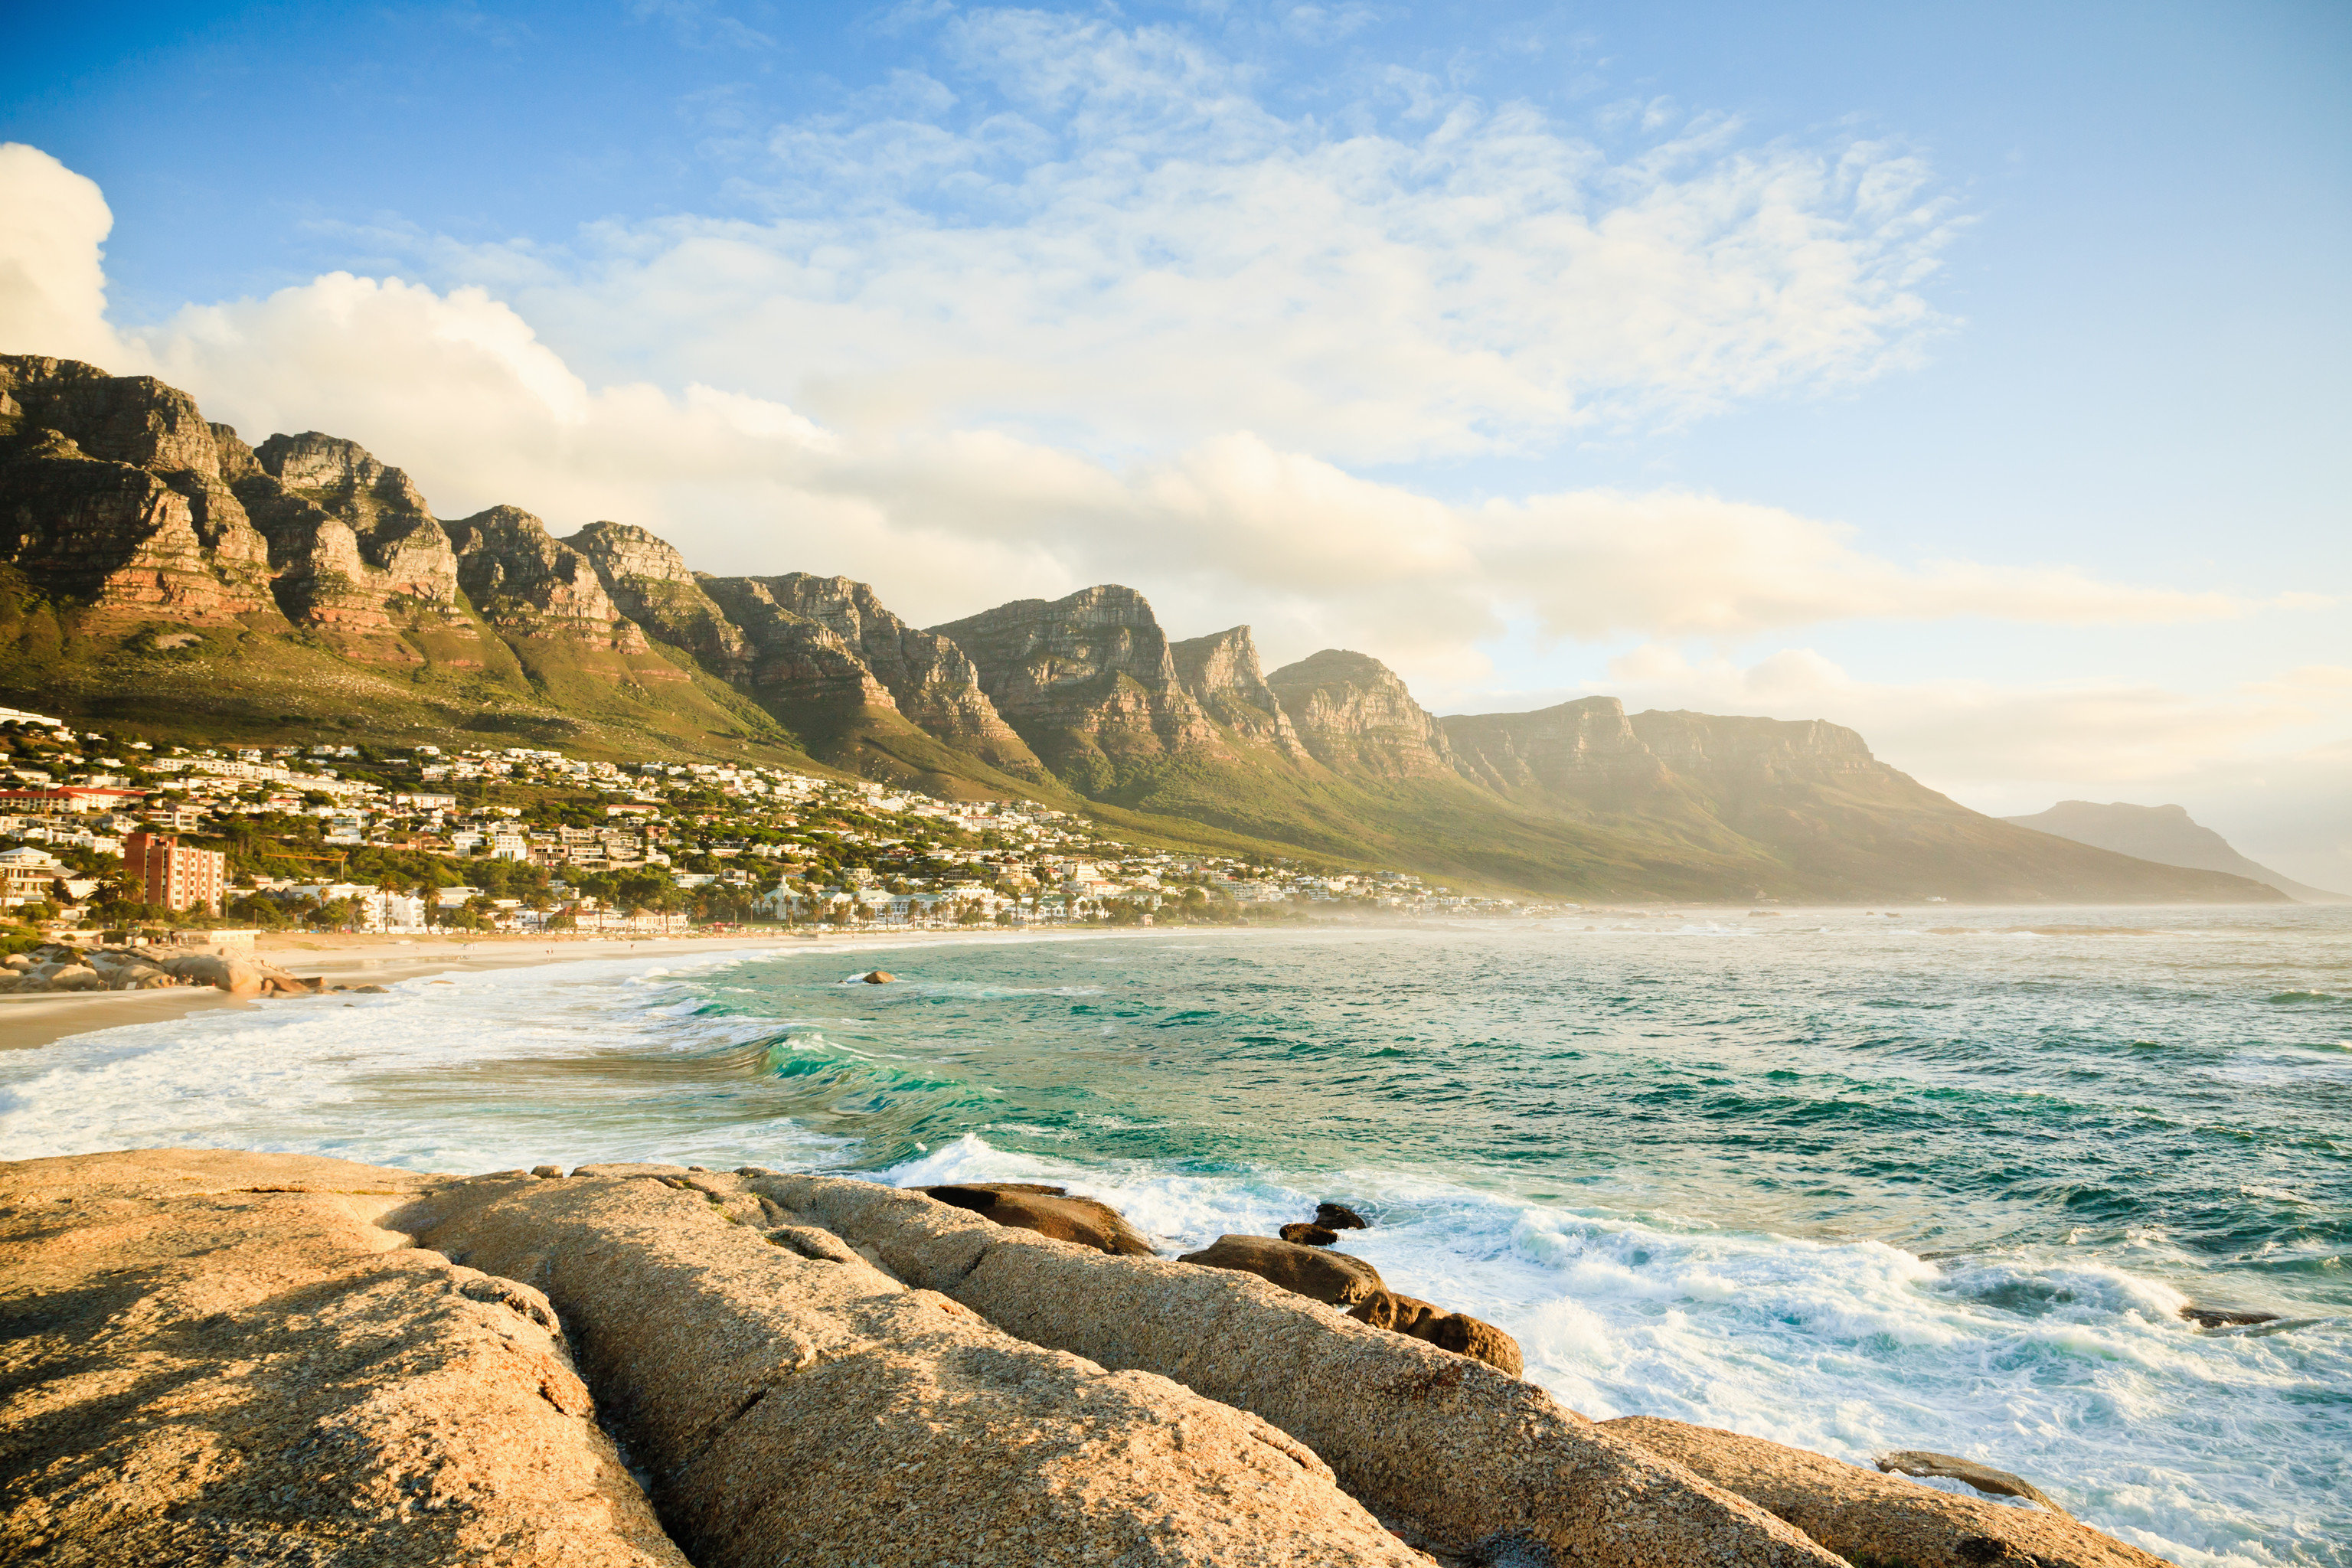 Hotels Trip Ideas outdoor sky rock mountain water Nature Sea shore Coast rocky body of water Beach Ocean cloud horizon vacation wave morning bay wind wave landscape cape cliff cove terrain sand sunlight material overlooking sandy highland